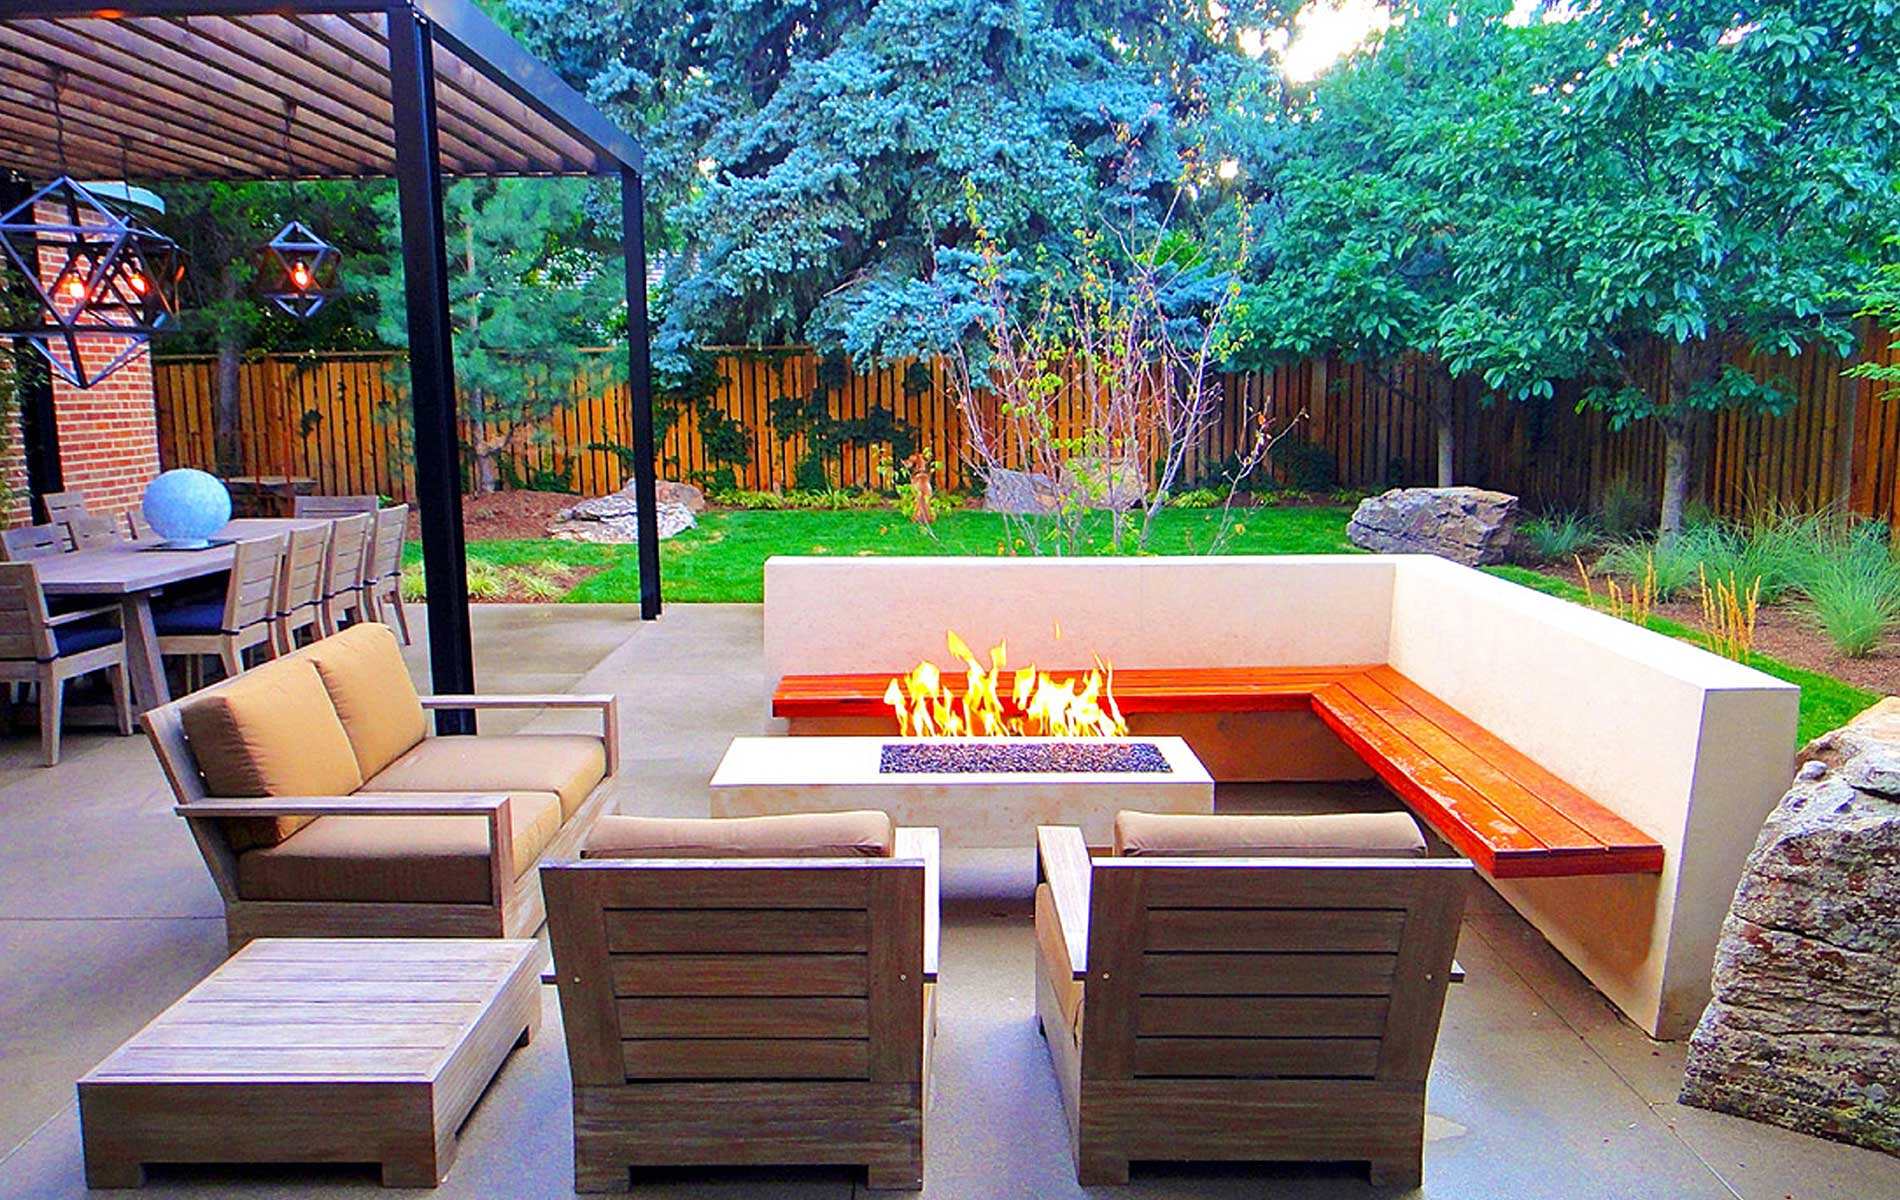 Sleek Modern Outdoor Living Space in Park Hill - Mile High ... on Garden Living Space id=99056